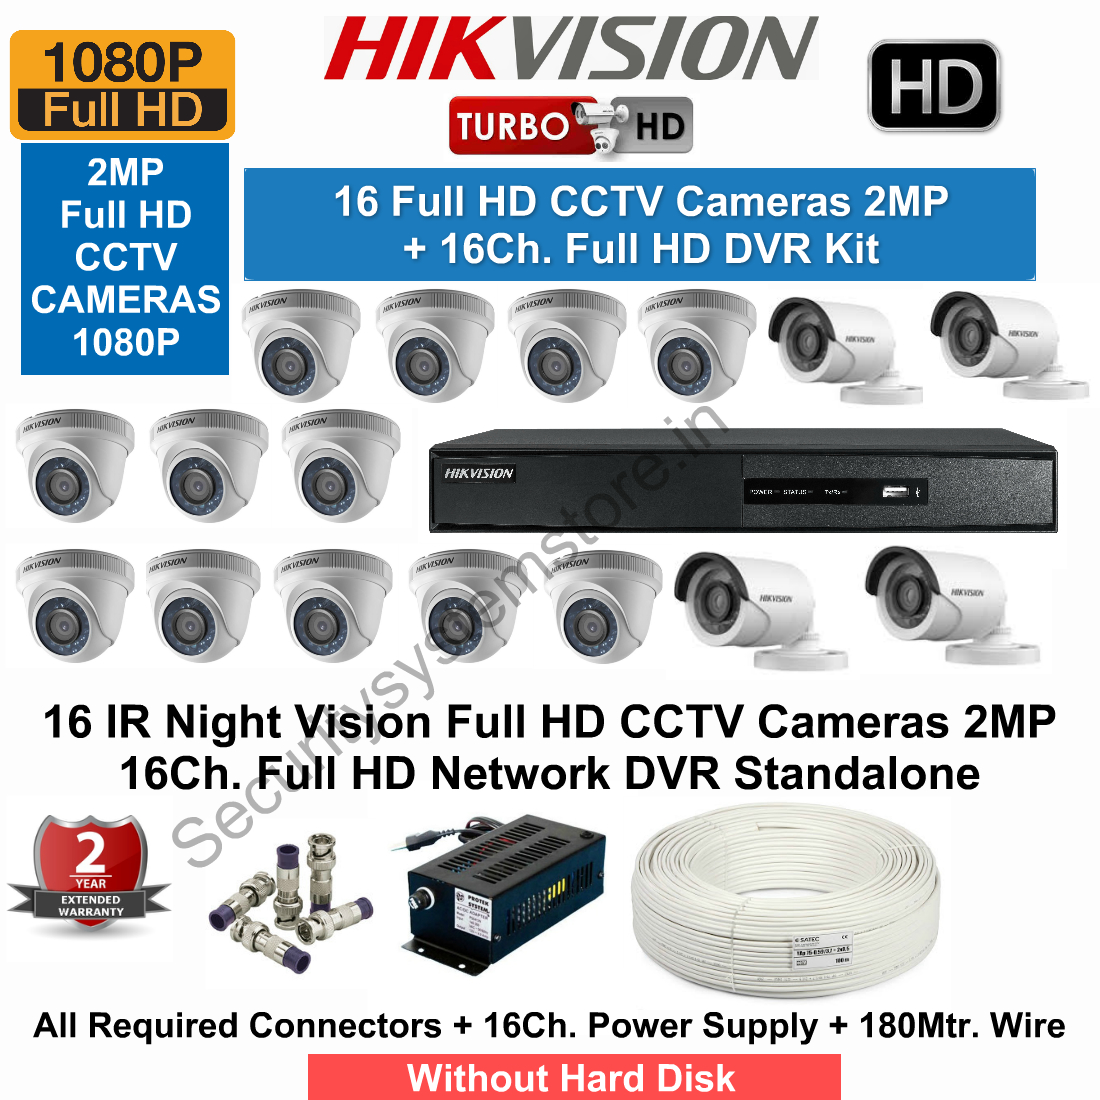 16 CCTV Cameras & DVR Kit,Hikvision,HIKVISION Full HD (2MP) 16CCTV Cameras & 16Ch.Full HD DVR Kit